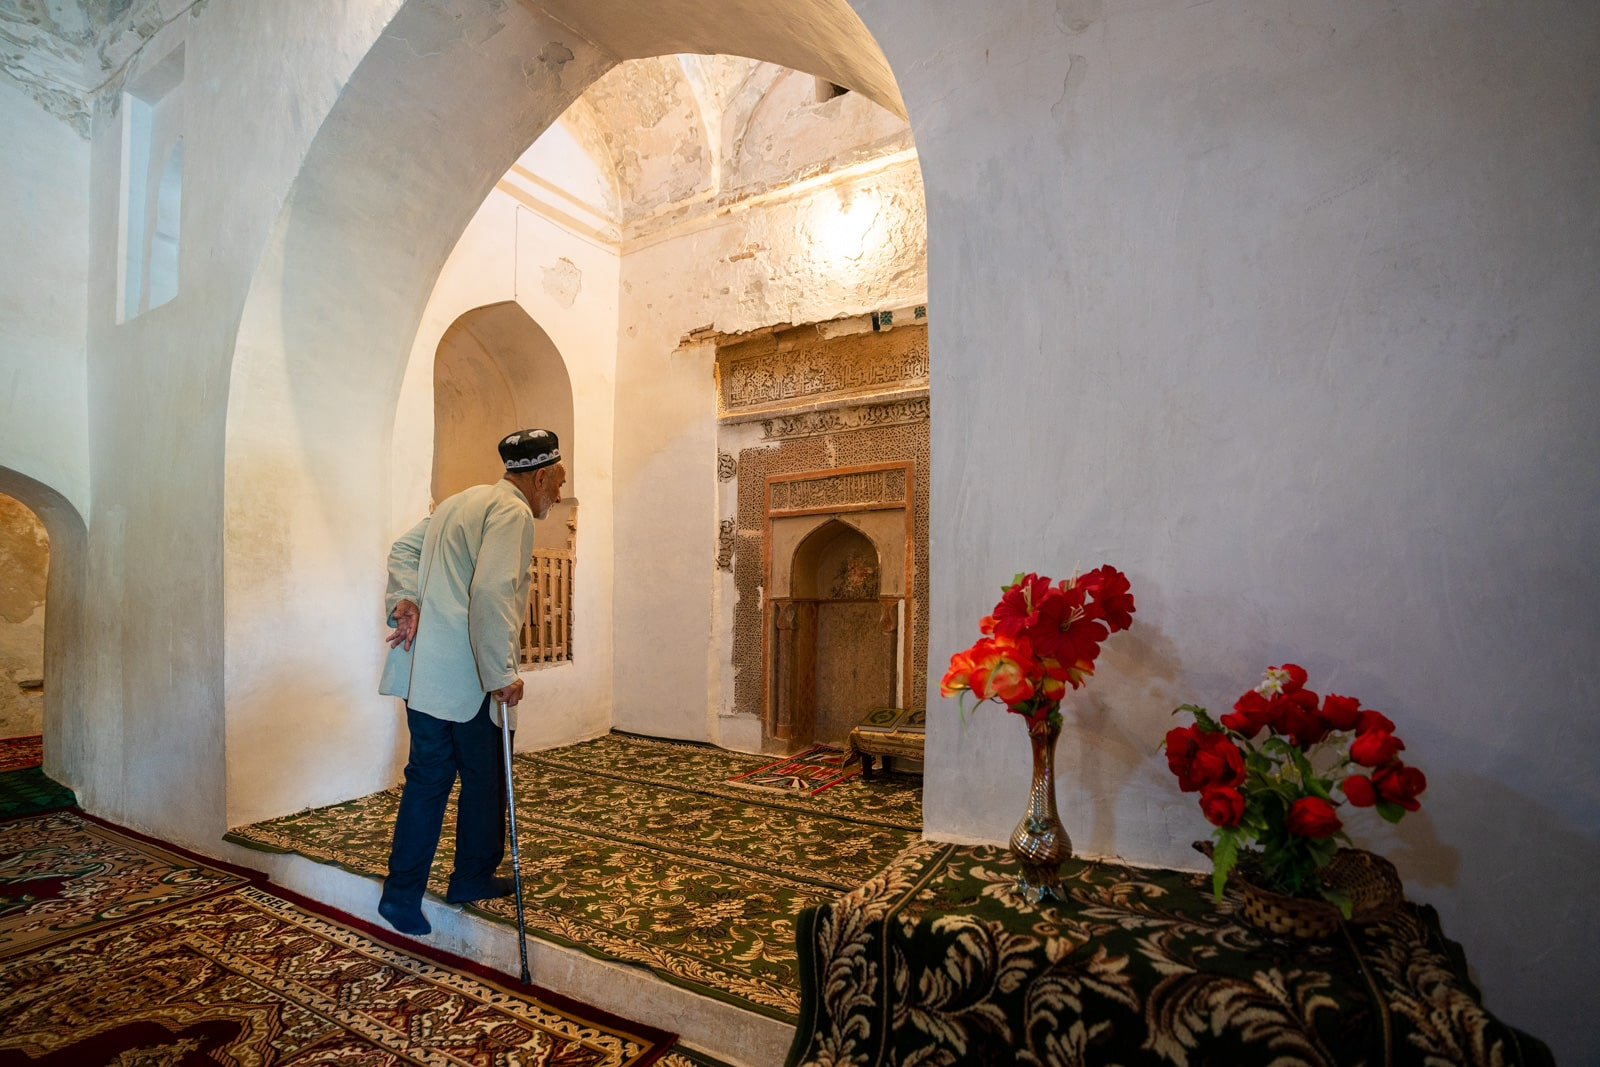 Caretaker walking in mausoleum of Muhammad Bashoro in Western Tajikistan